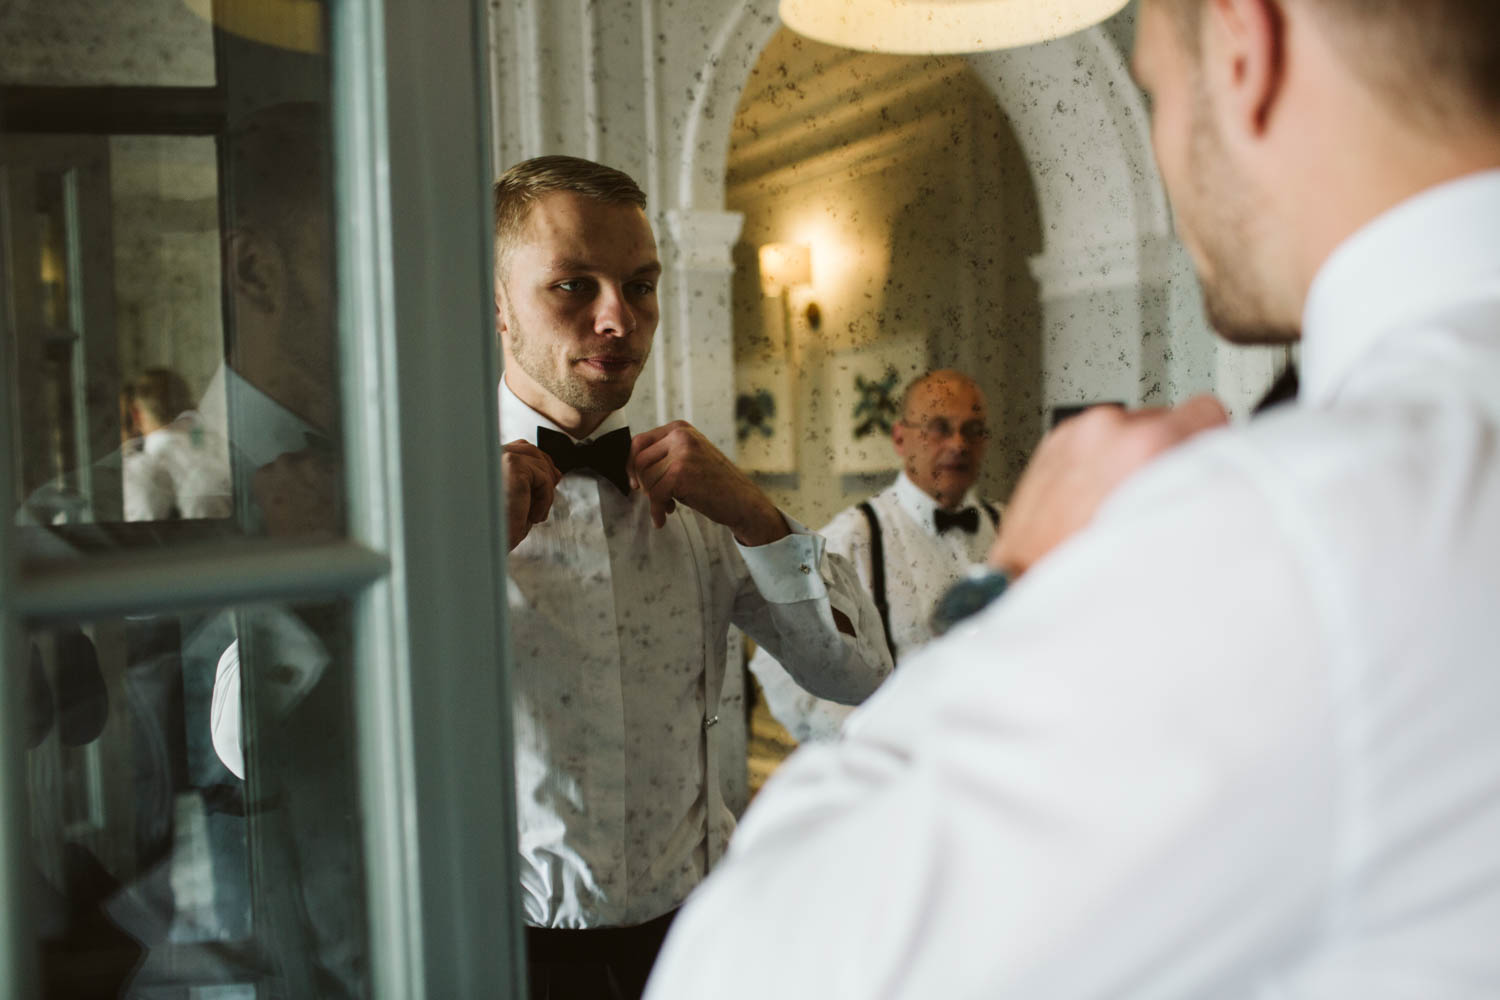 creative portrait of the groom while tying his bowtie